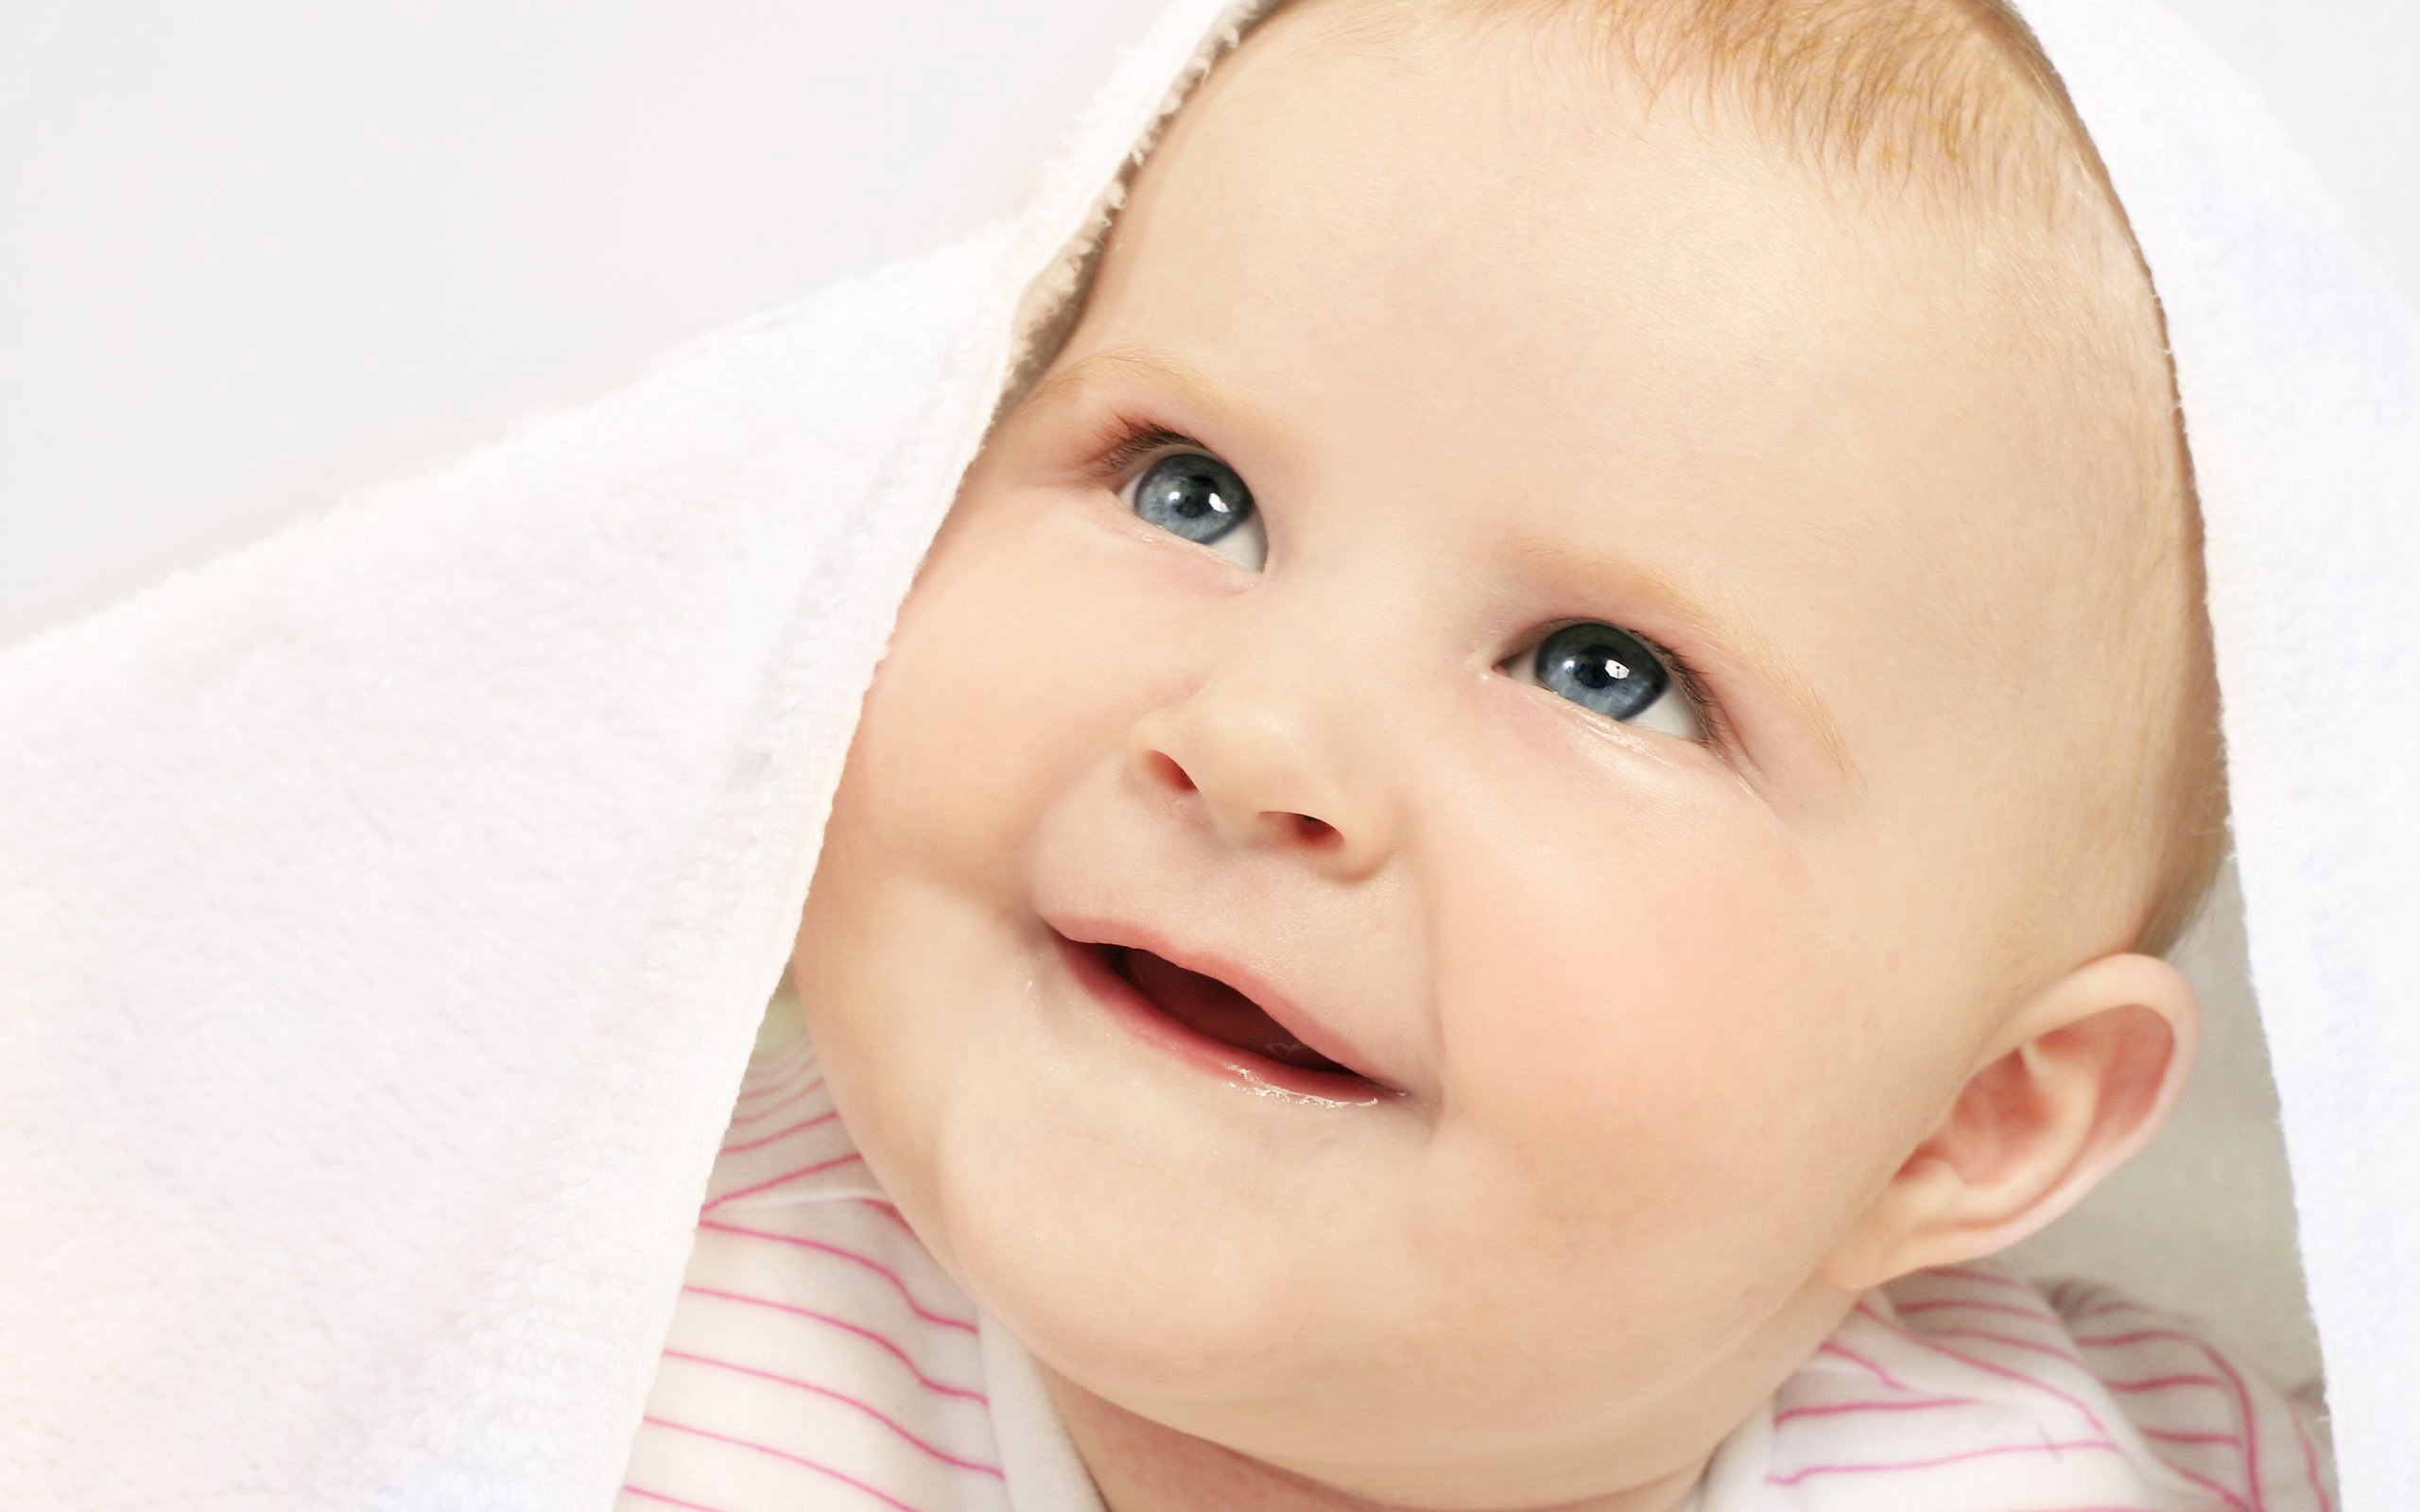 Res: 2560x1600, Hd Images Of An Smiling New Born Baby Wallpaper Full Pics For Iphone Cute  Babies Boy